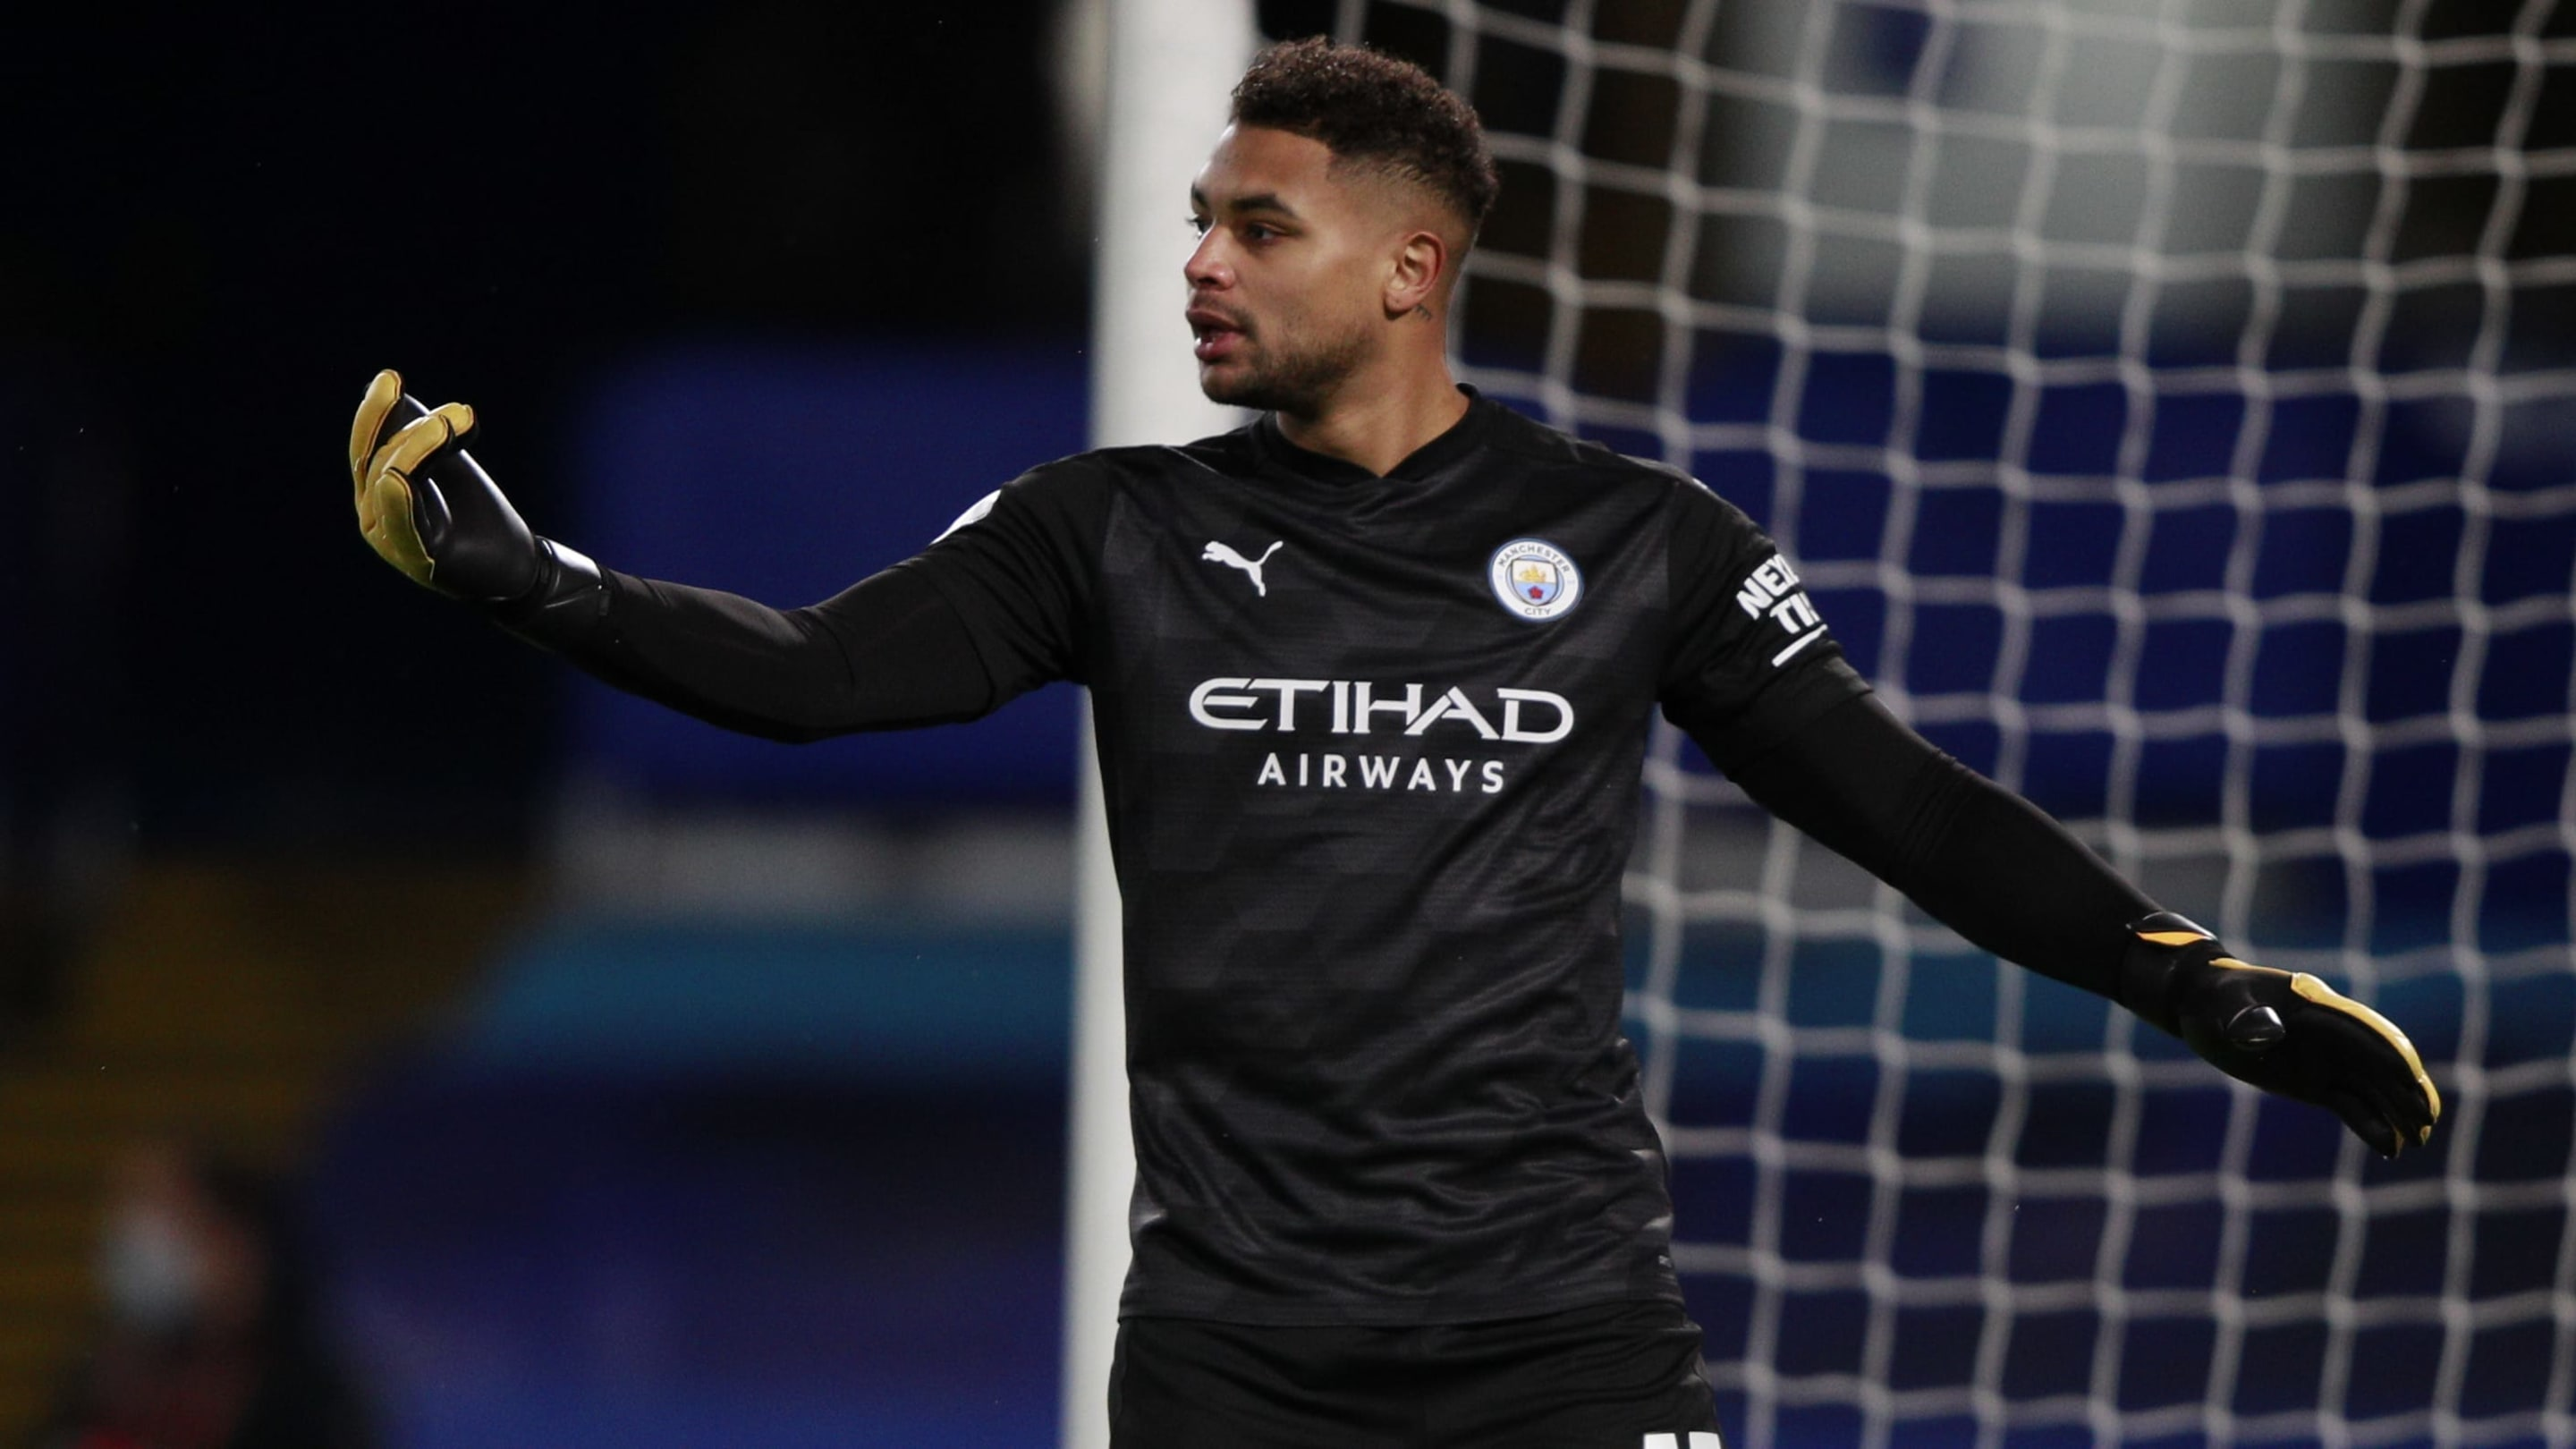 Who is Zack Steffen & when did he join Man City?